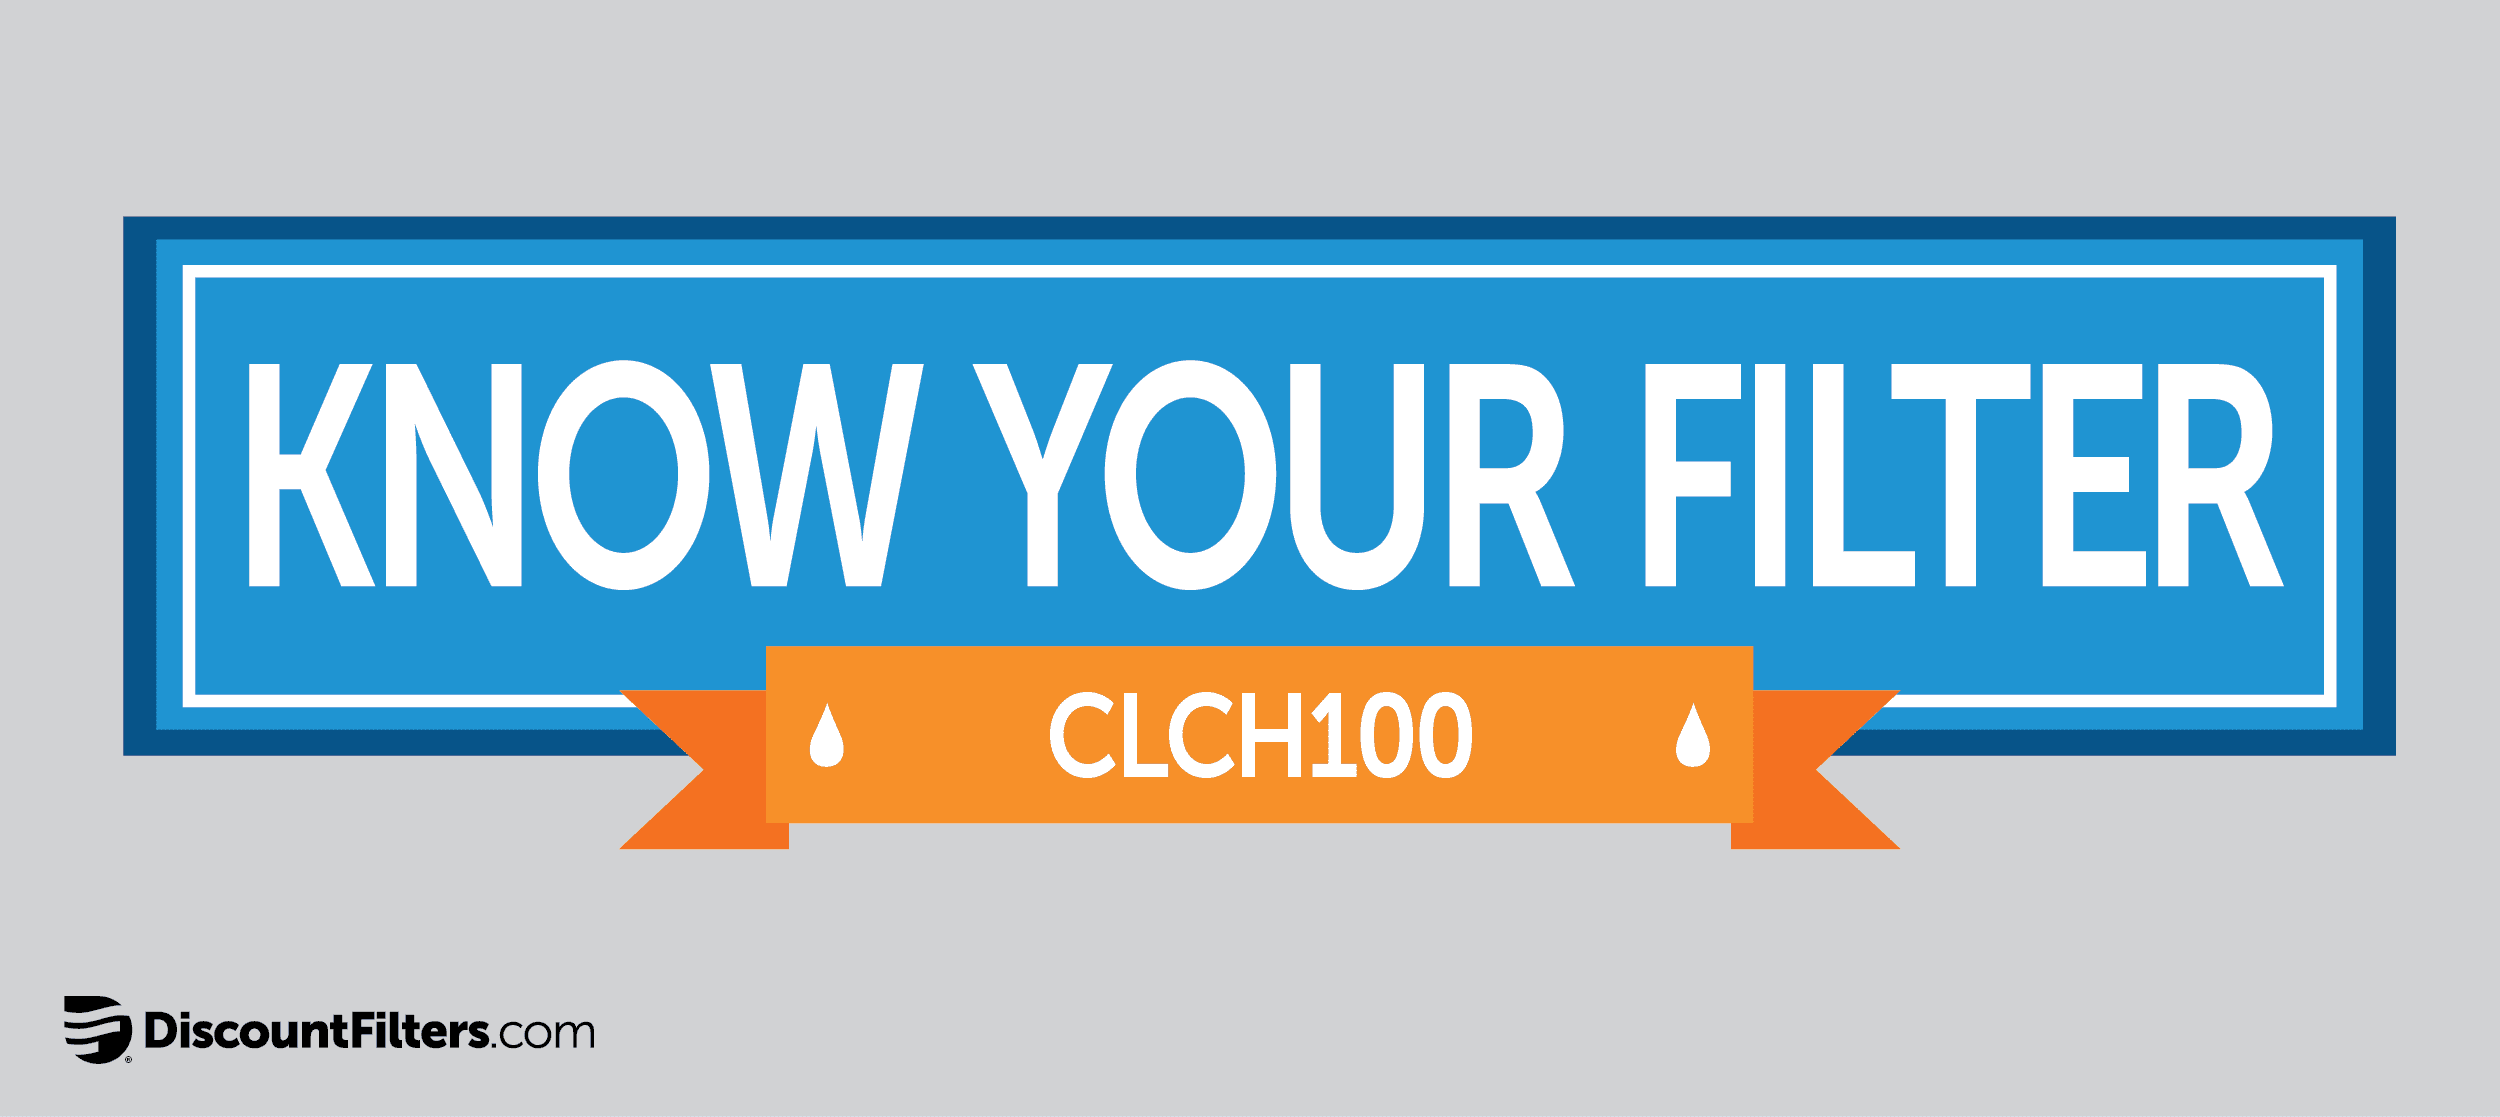 4396508 replacement filter: clch100